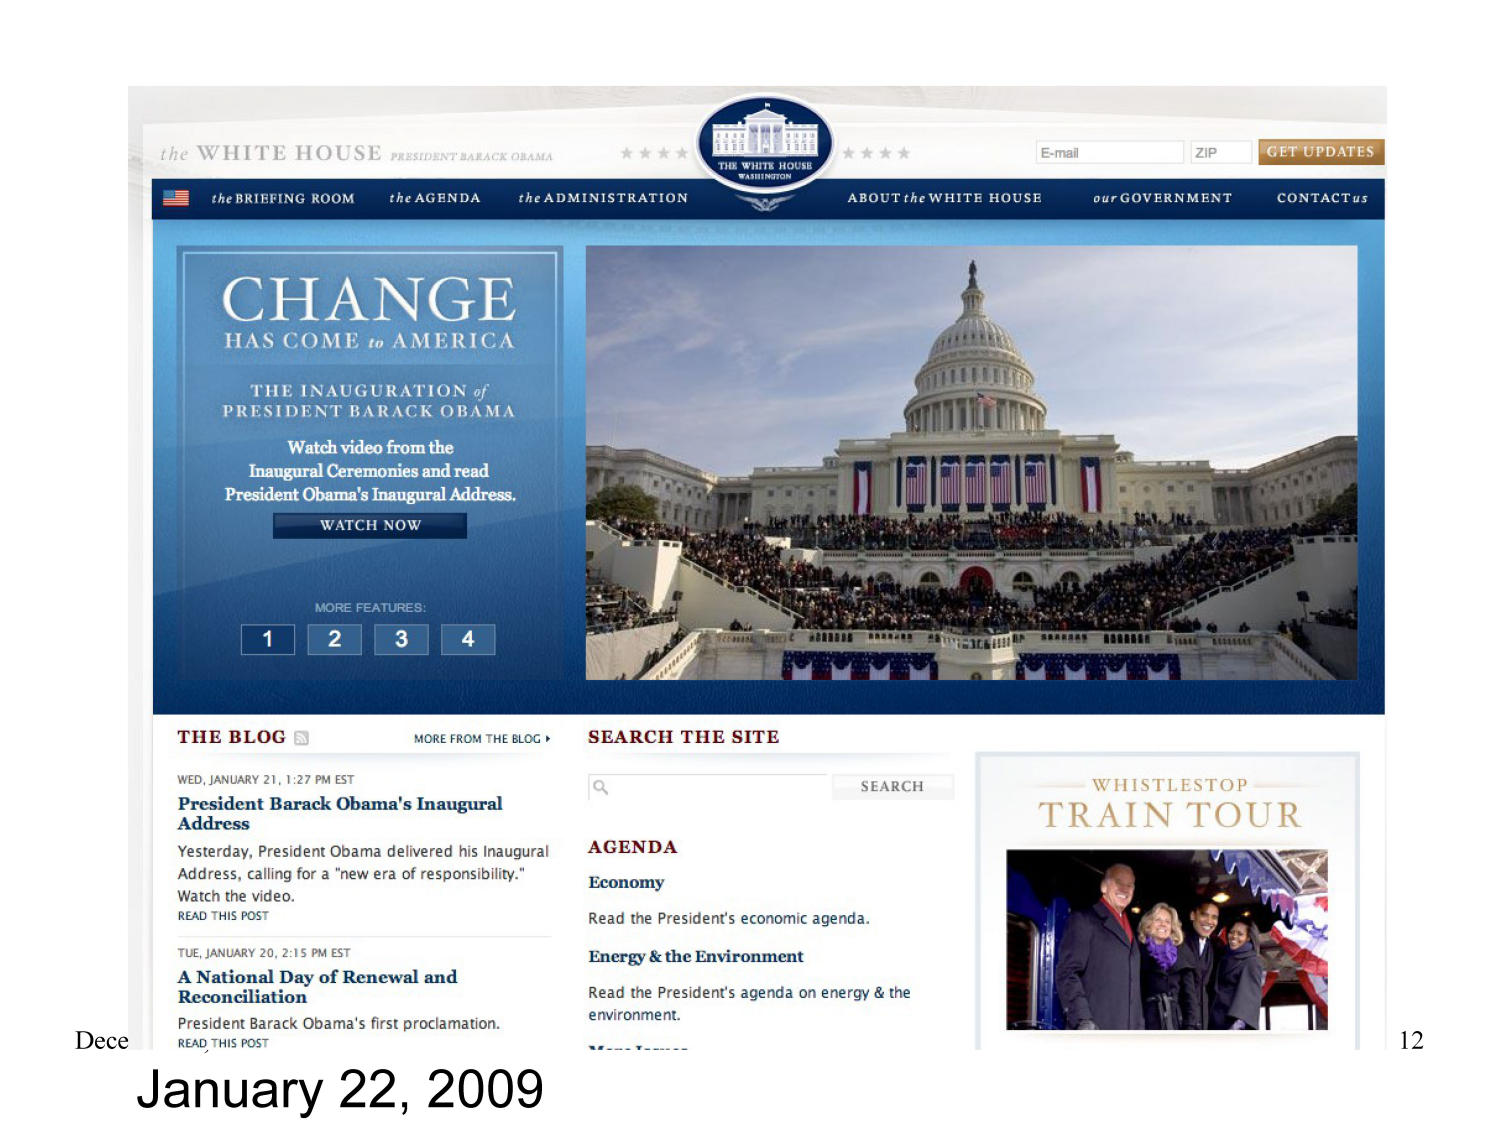 End of Term 2008 Presidential Web Archive: PDF Content Analysis                                                                                                      [Sequence #]: 12 of 104